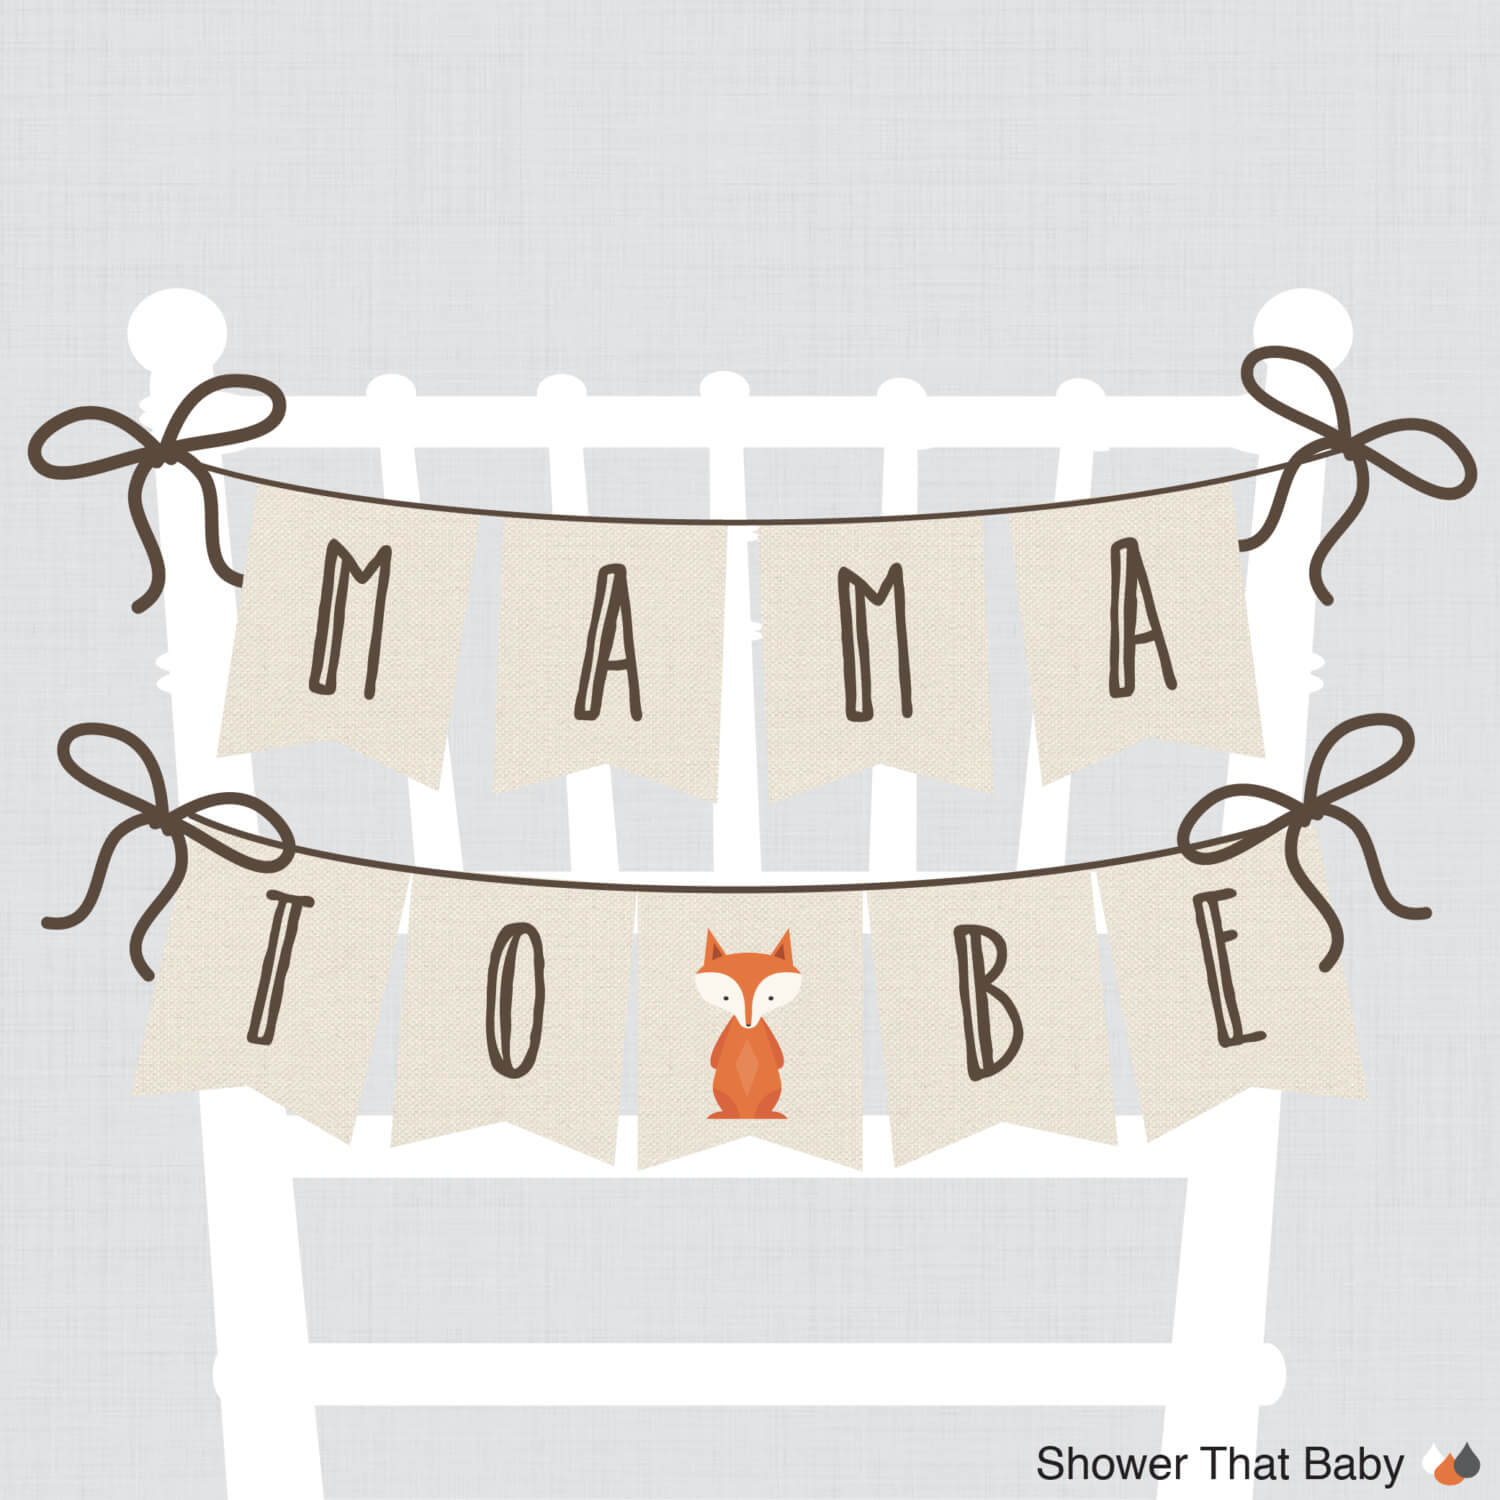 how to make a baby shower chair drive medical bathroom safety tub bench grey lots of banner ideas 43 decorations